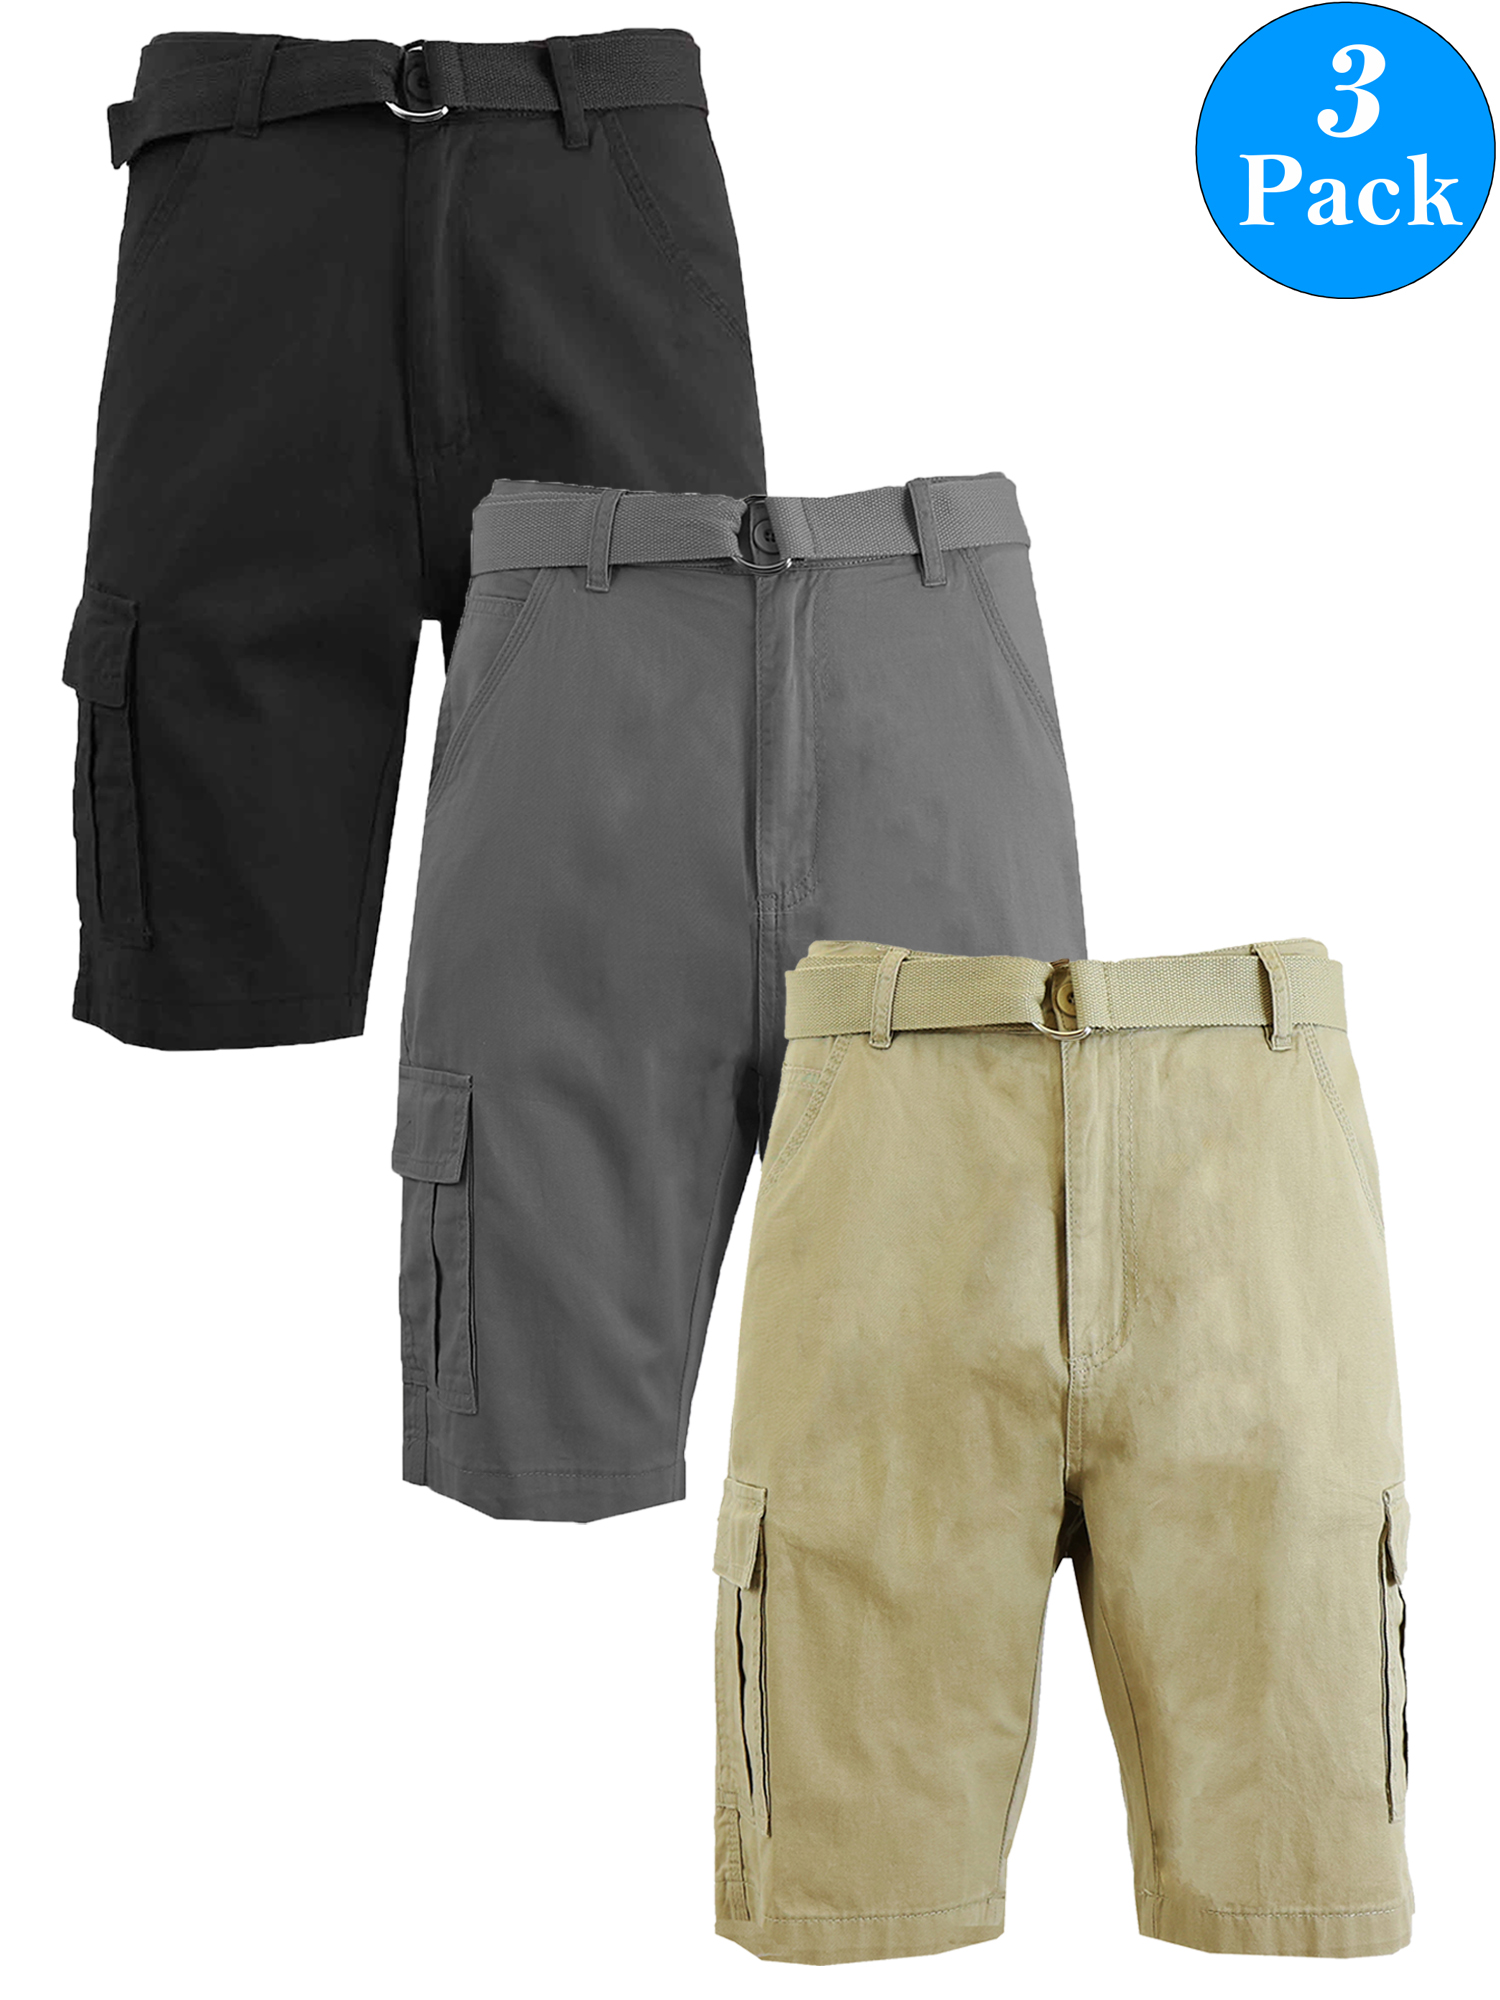 Men's Belted Cotton Cargo Shorts (3-Pack)